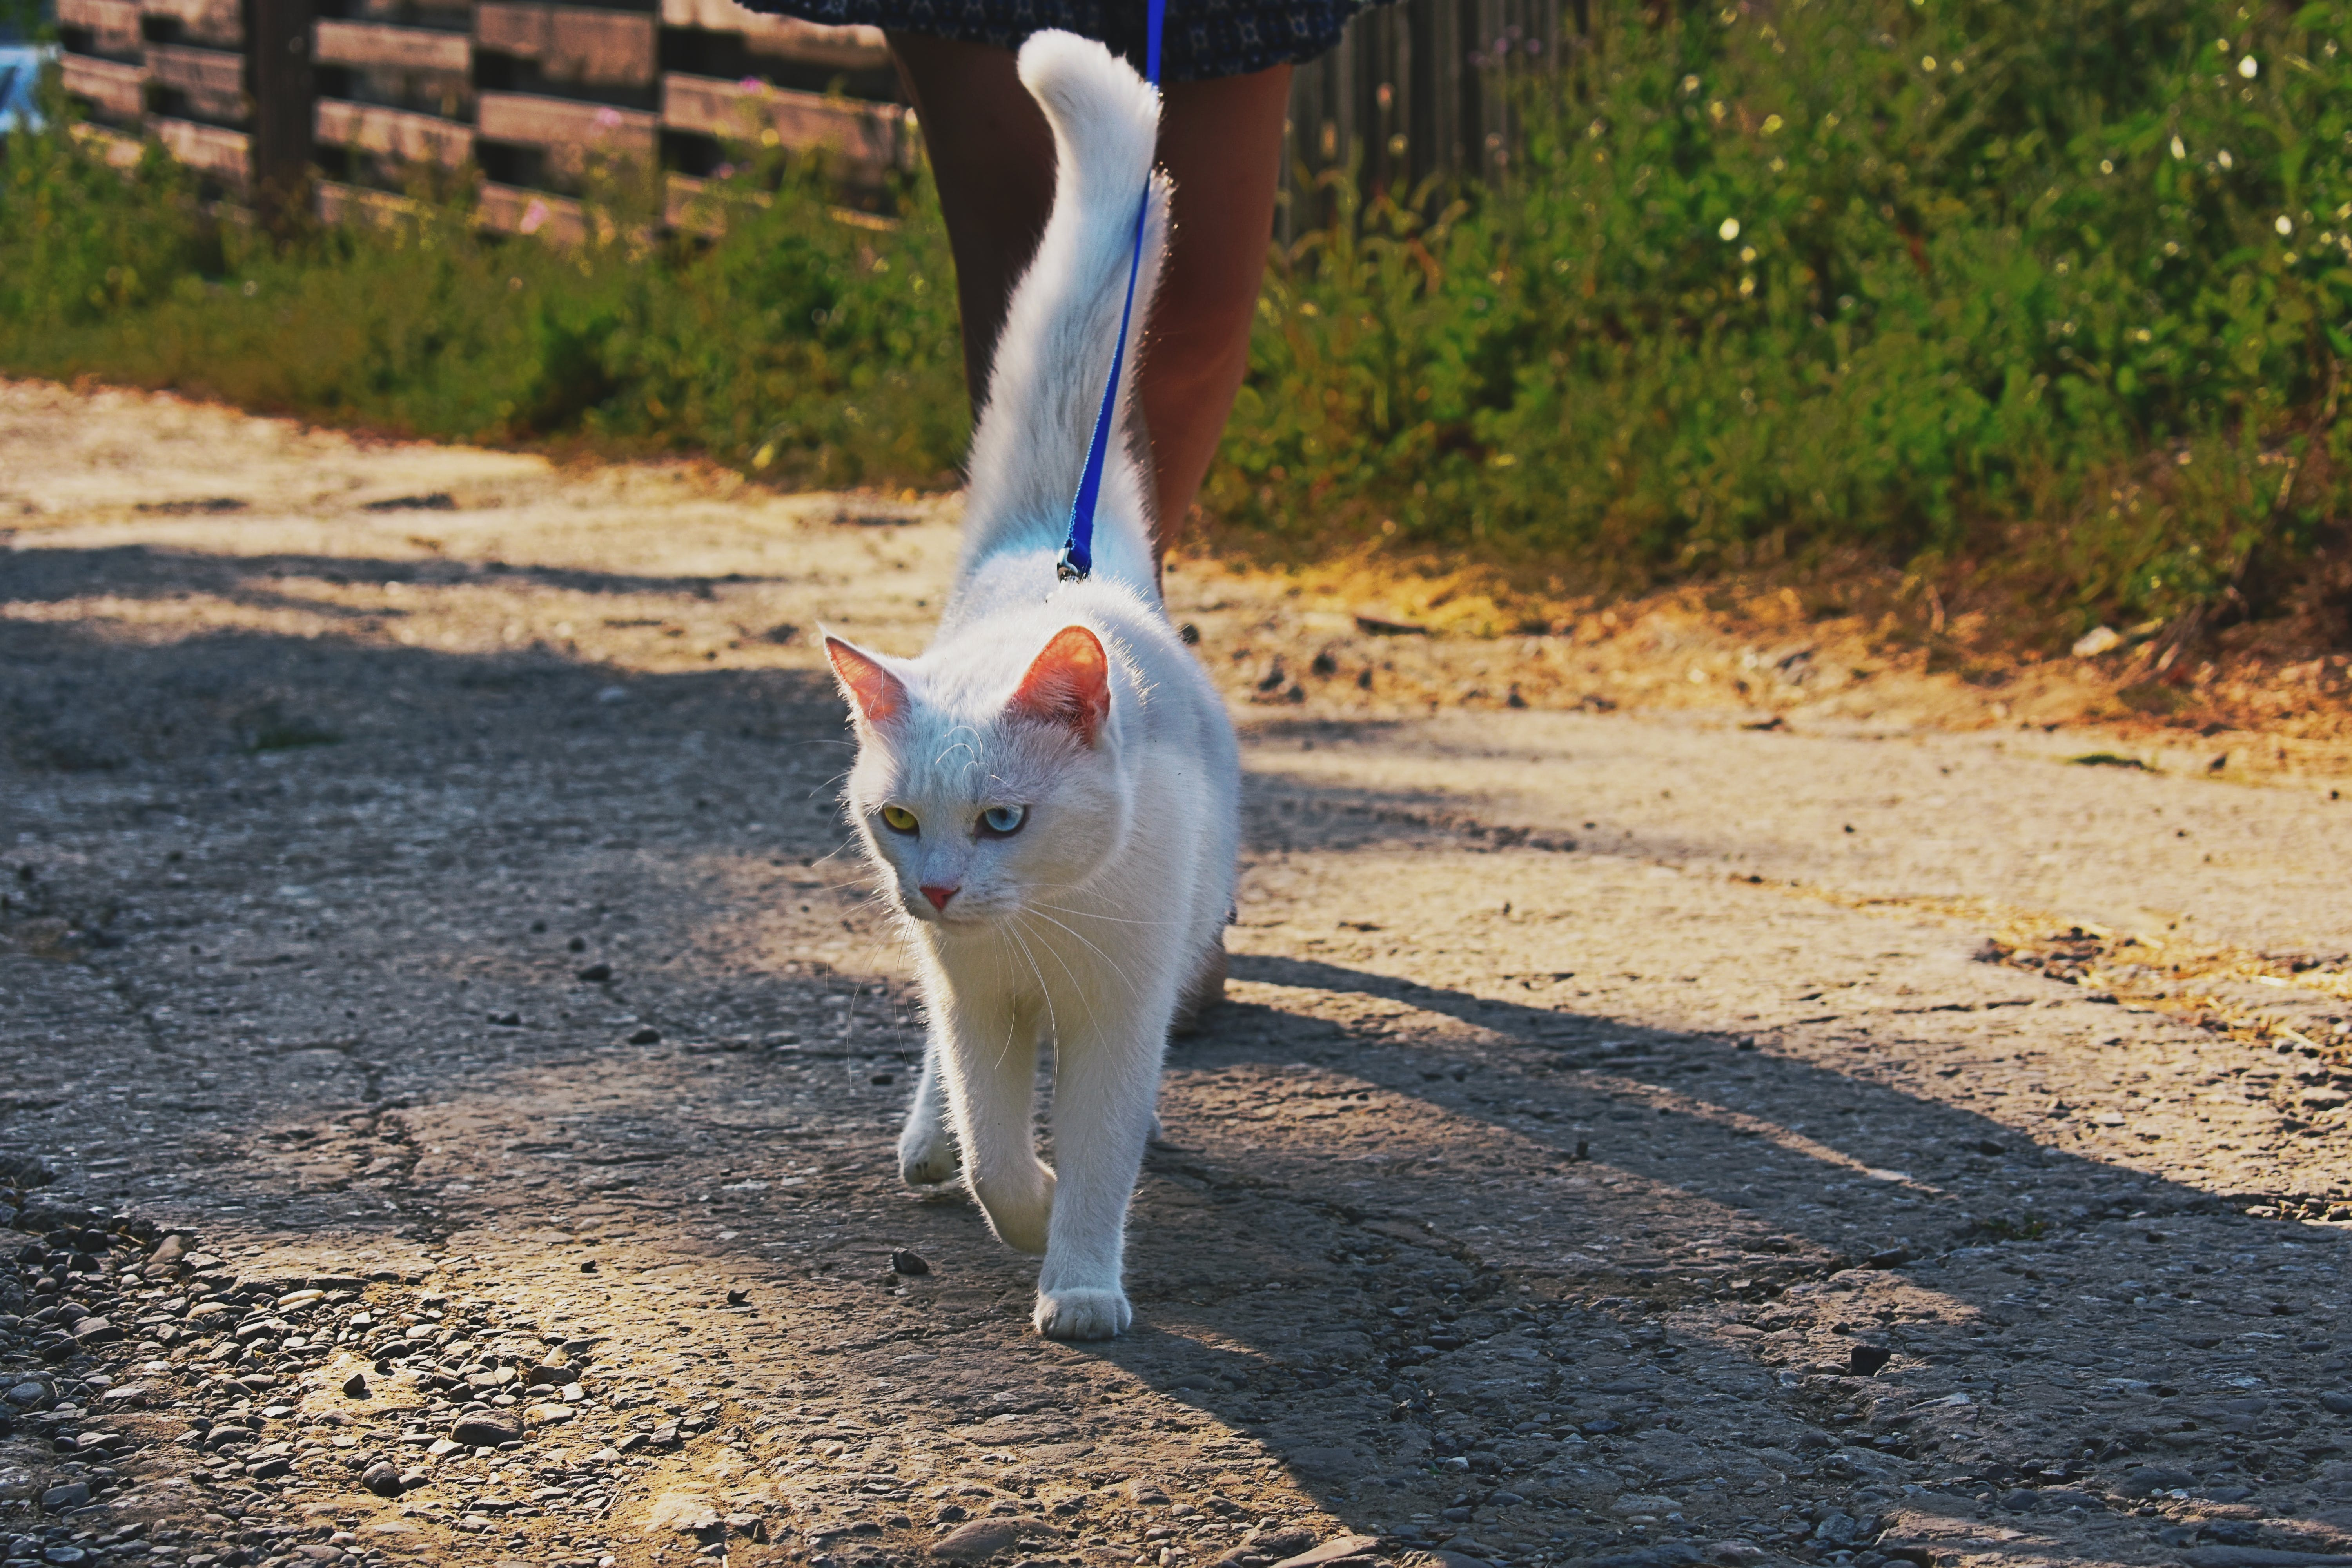 Short-fur White Cat Walking With Person on Road